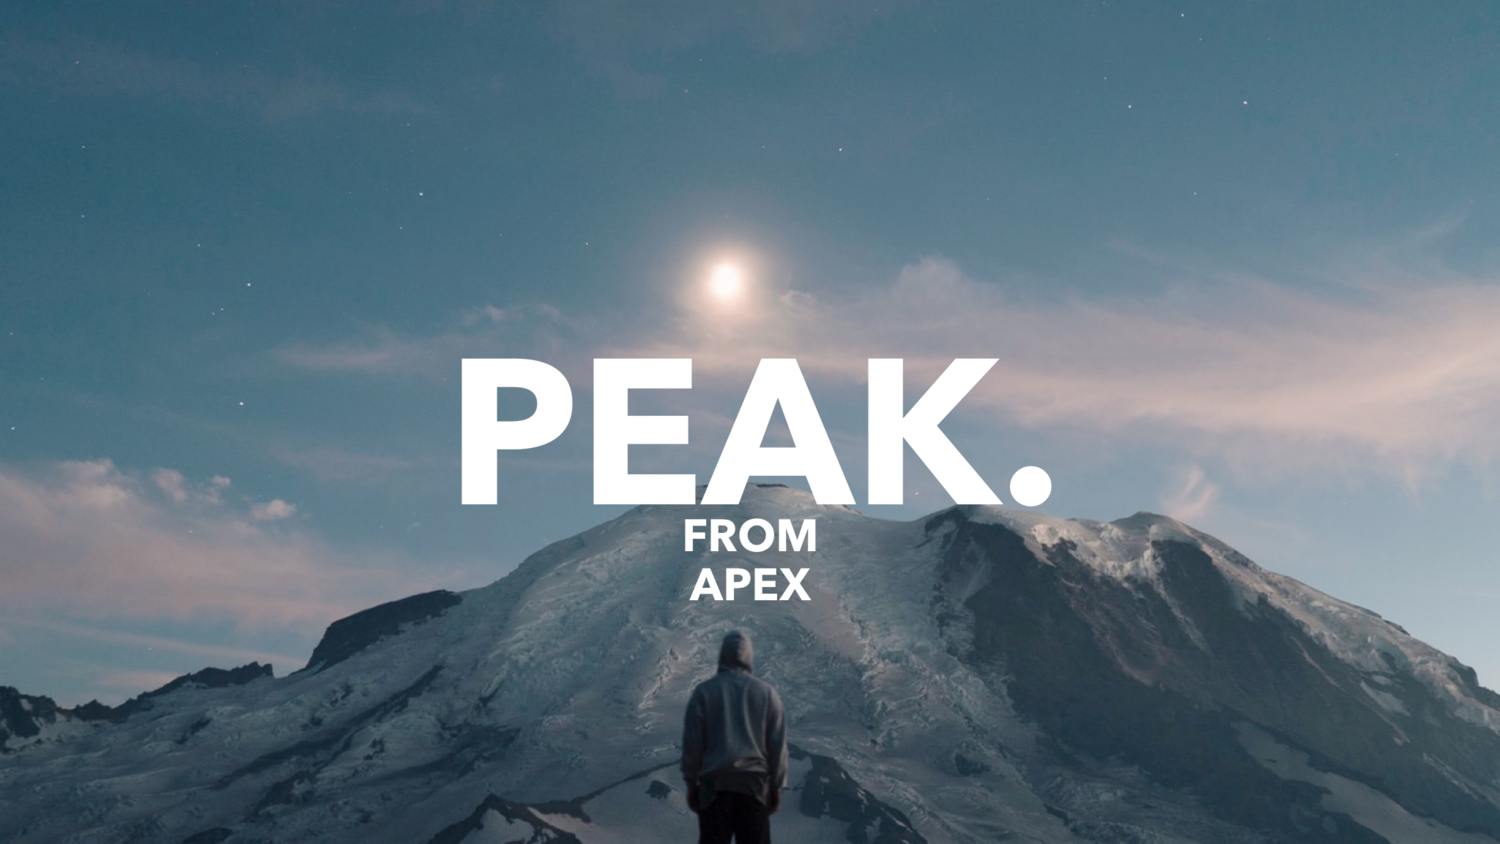 A blog about Fitness, Food and Lifestyle - PEAK is all about about living a healthy, happy, and confident life while learning to enjoy the simple pleasures.